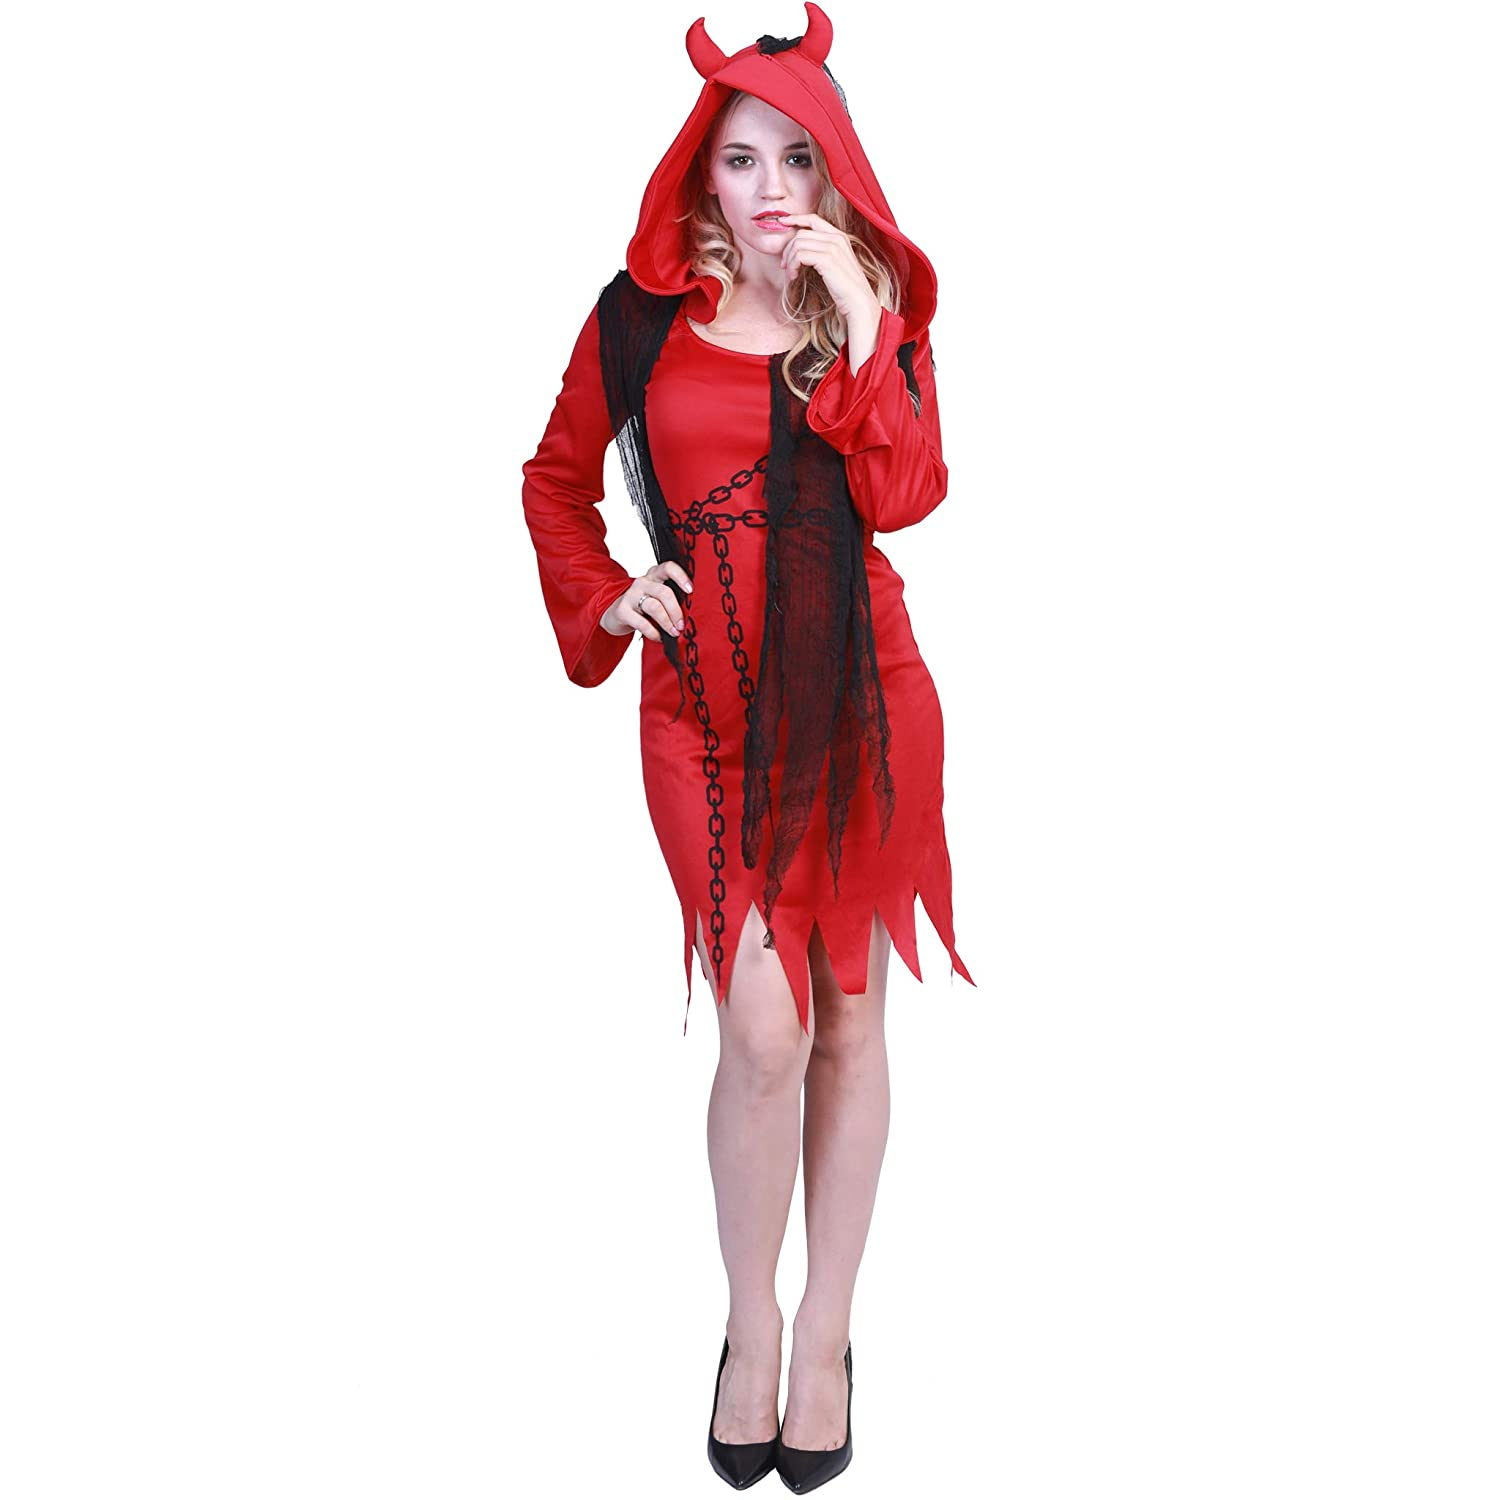 Duivel Kostuum Halloween.Buy Reneecho Women S Red Devil Costume Fancy Dress Robe Cosplay Halloween Funny Party Outfit For Adult At Amazon In